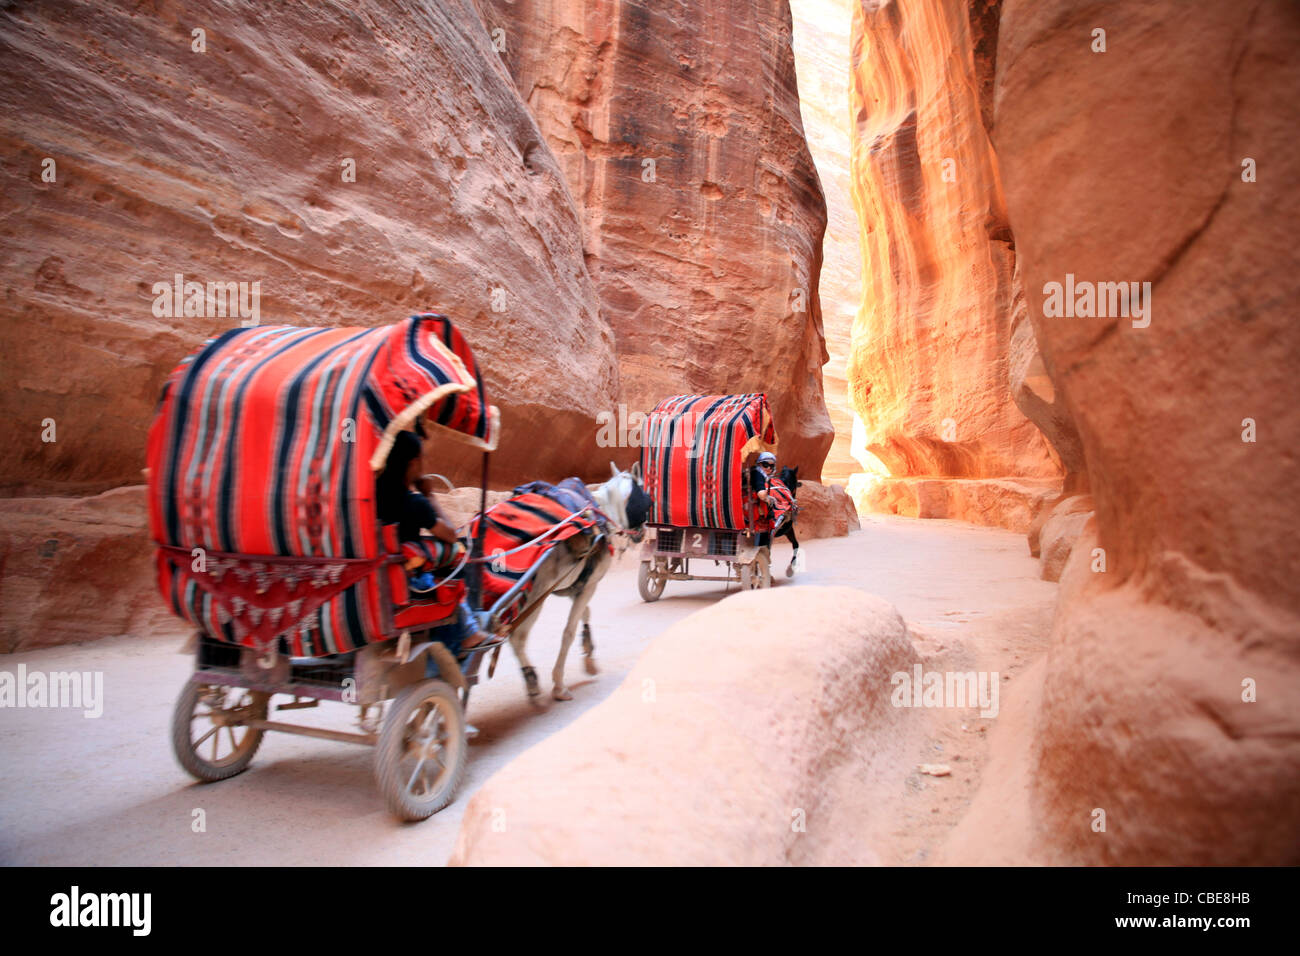 Tourists being transported by donkey karts in Petra Jordan - Stock Image